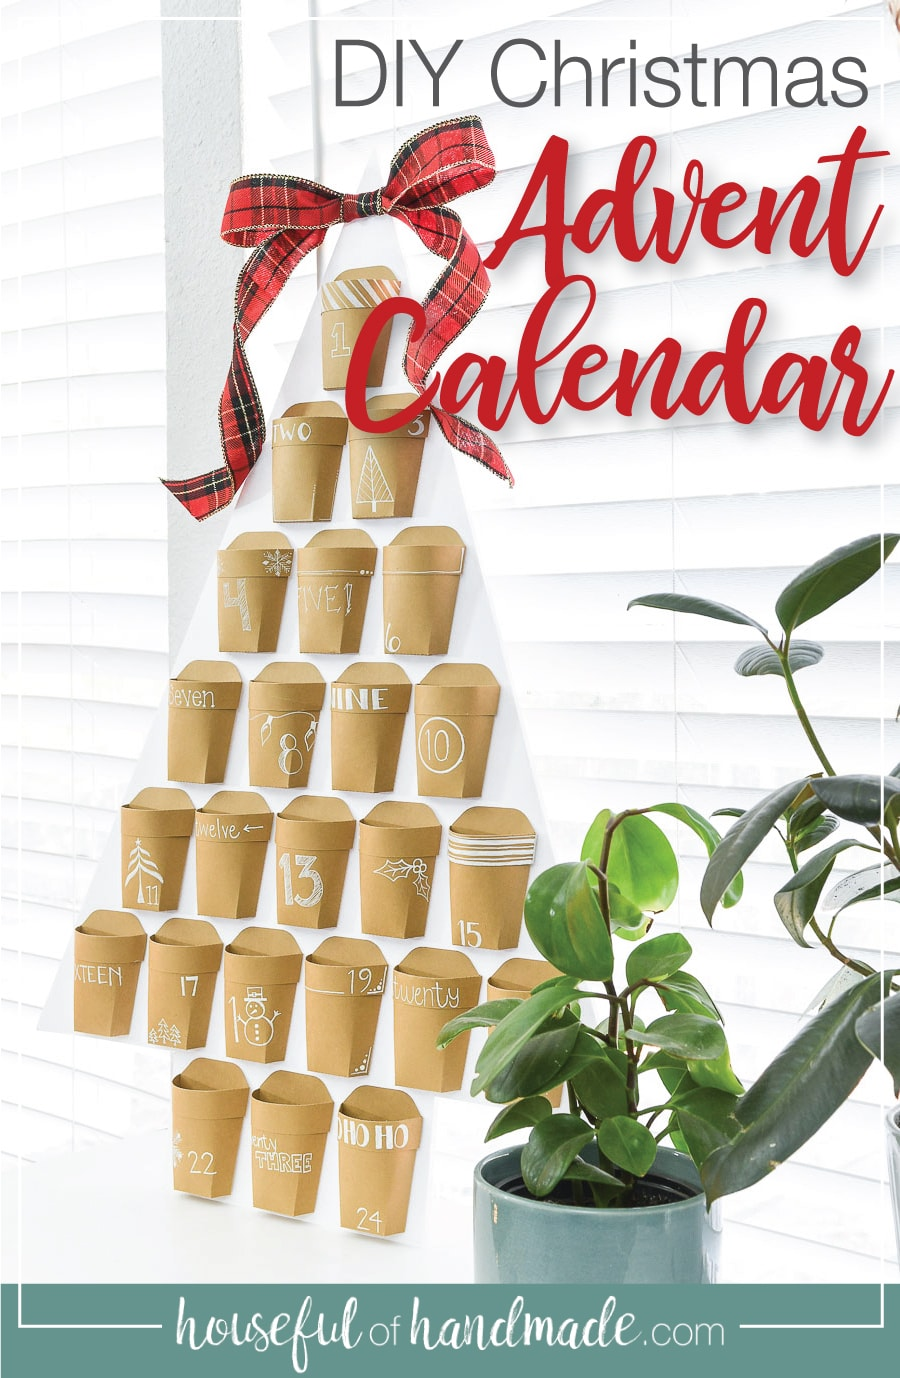 Picture of the finished DIY advent calendar with text overlay: DIY Christmas Advent Calendar.